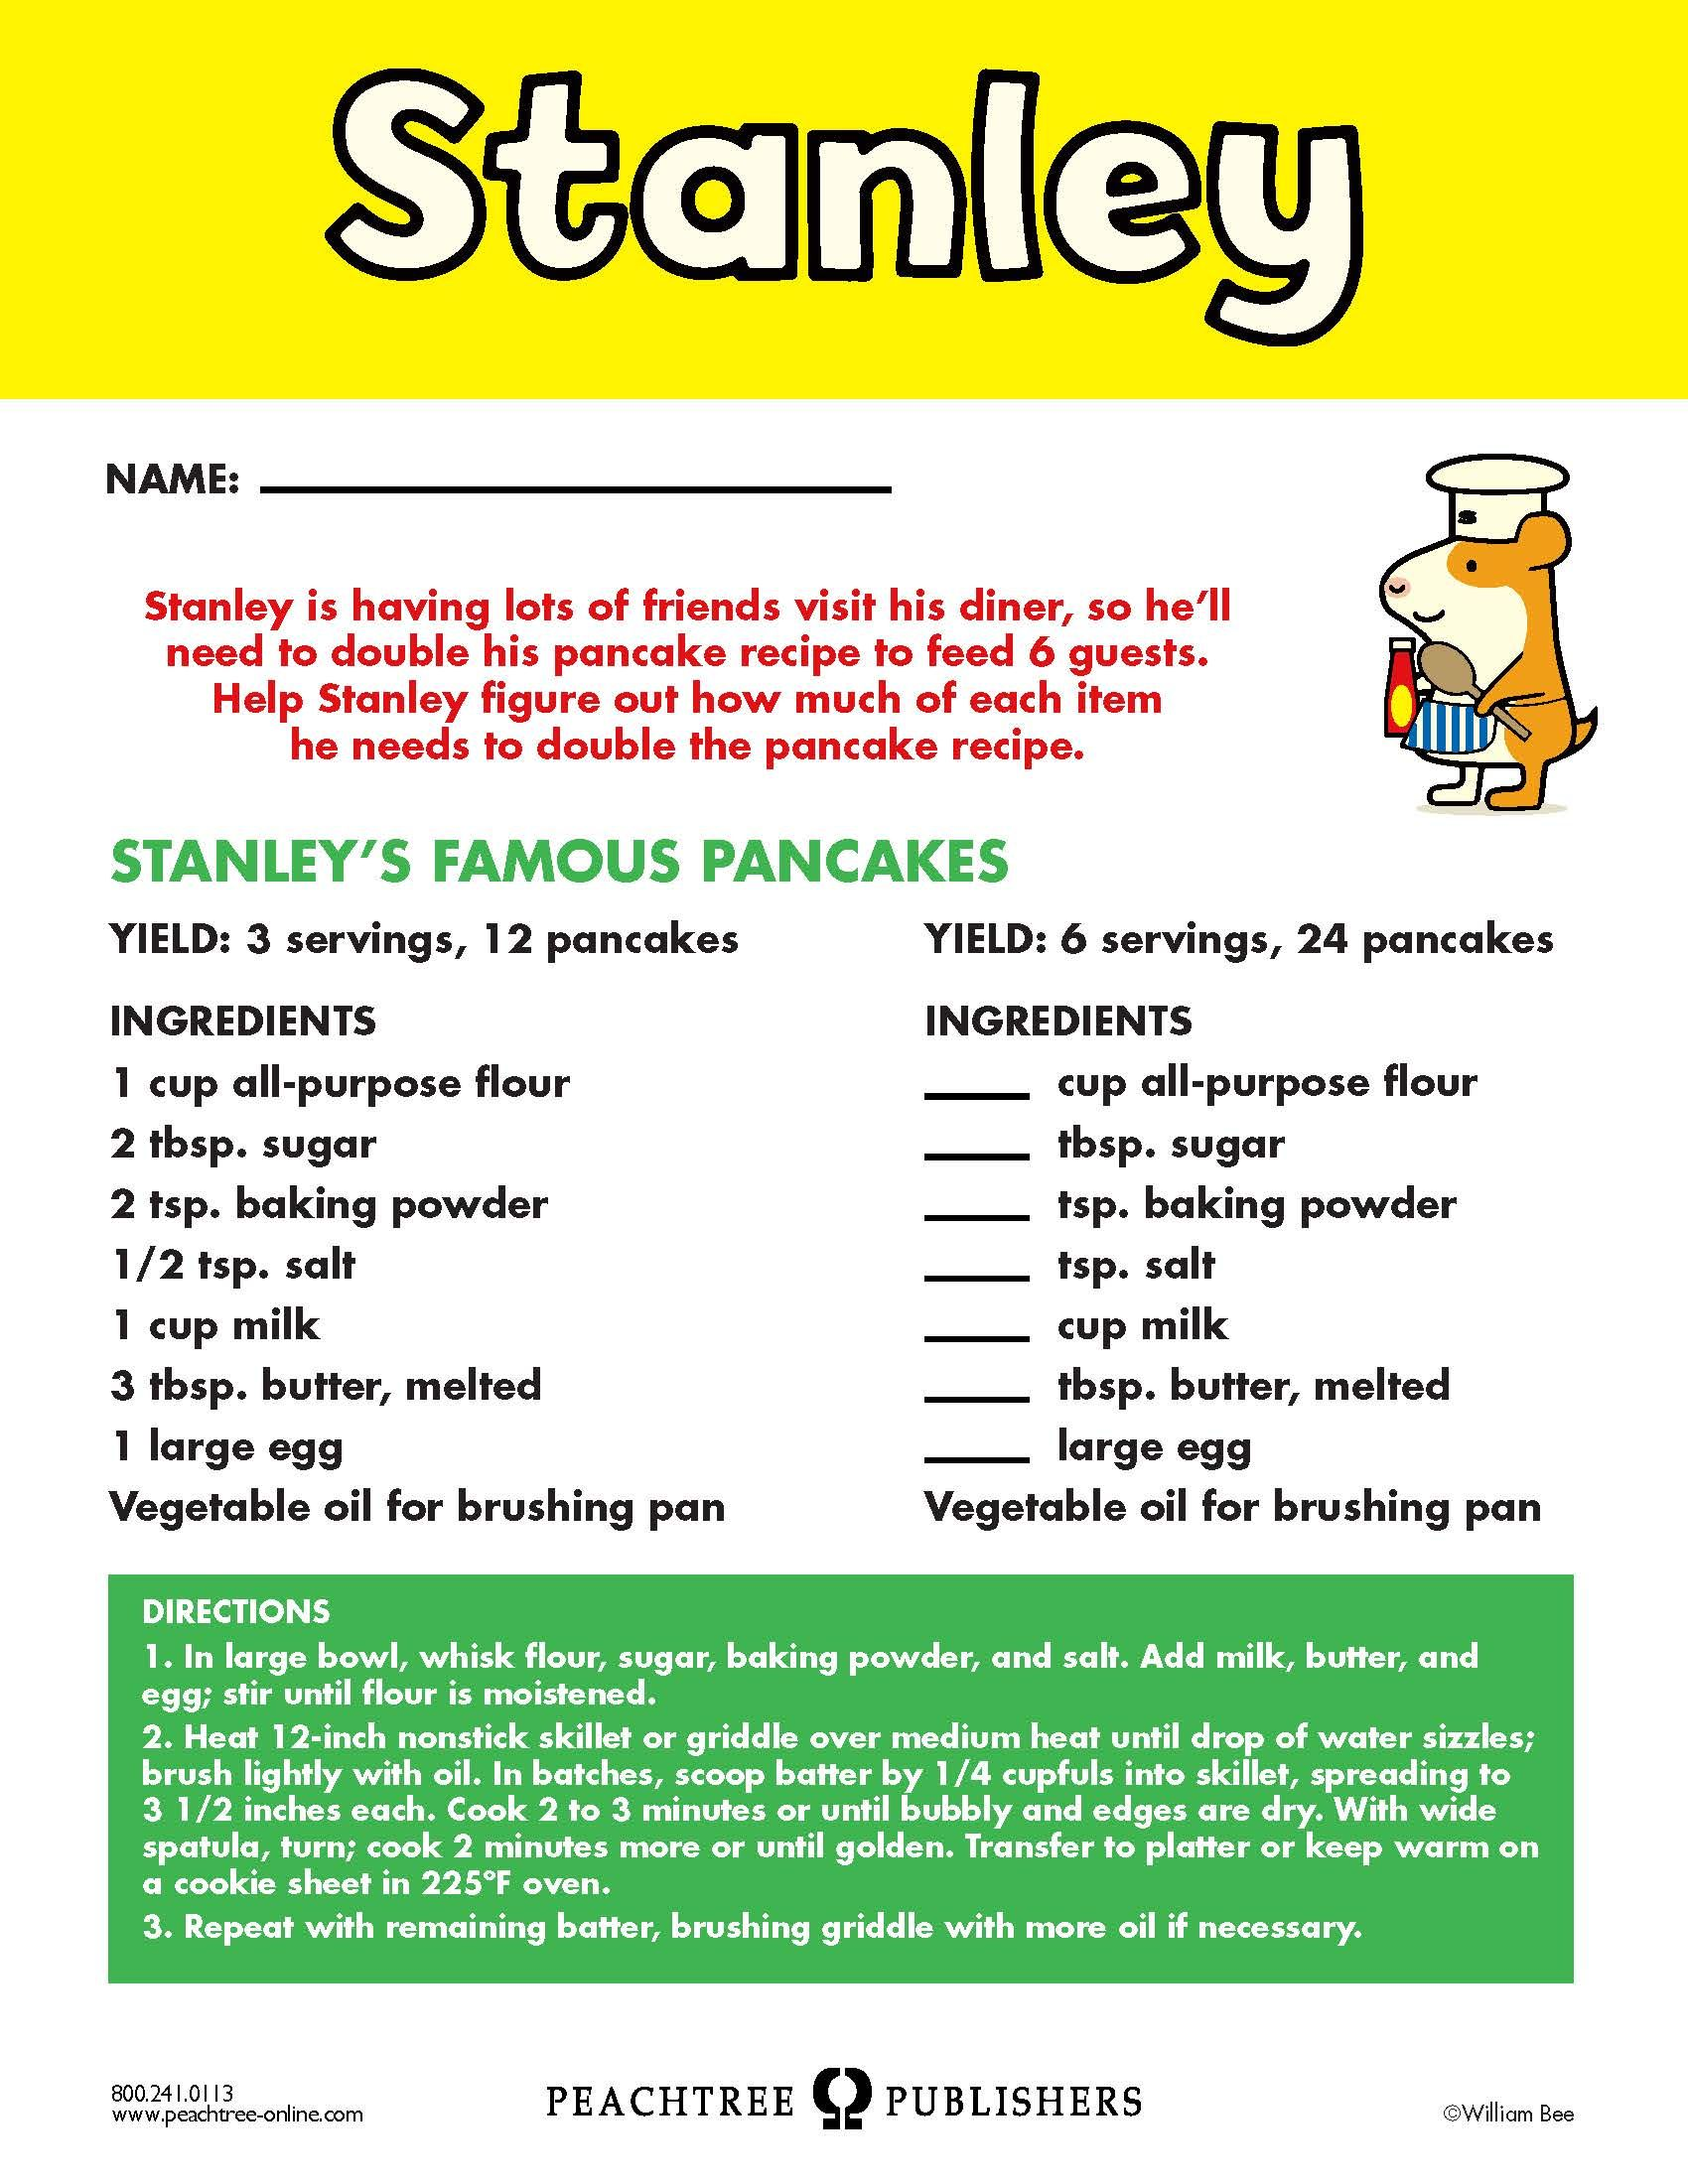 Free Educators Resource Activity Kit For Stanley S Diner Recipe Sheet Recipe Sheets Worksheets For Kids Diner Recipes